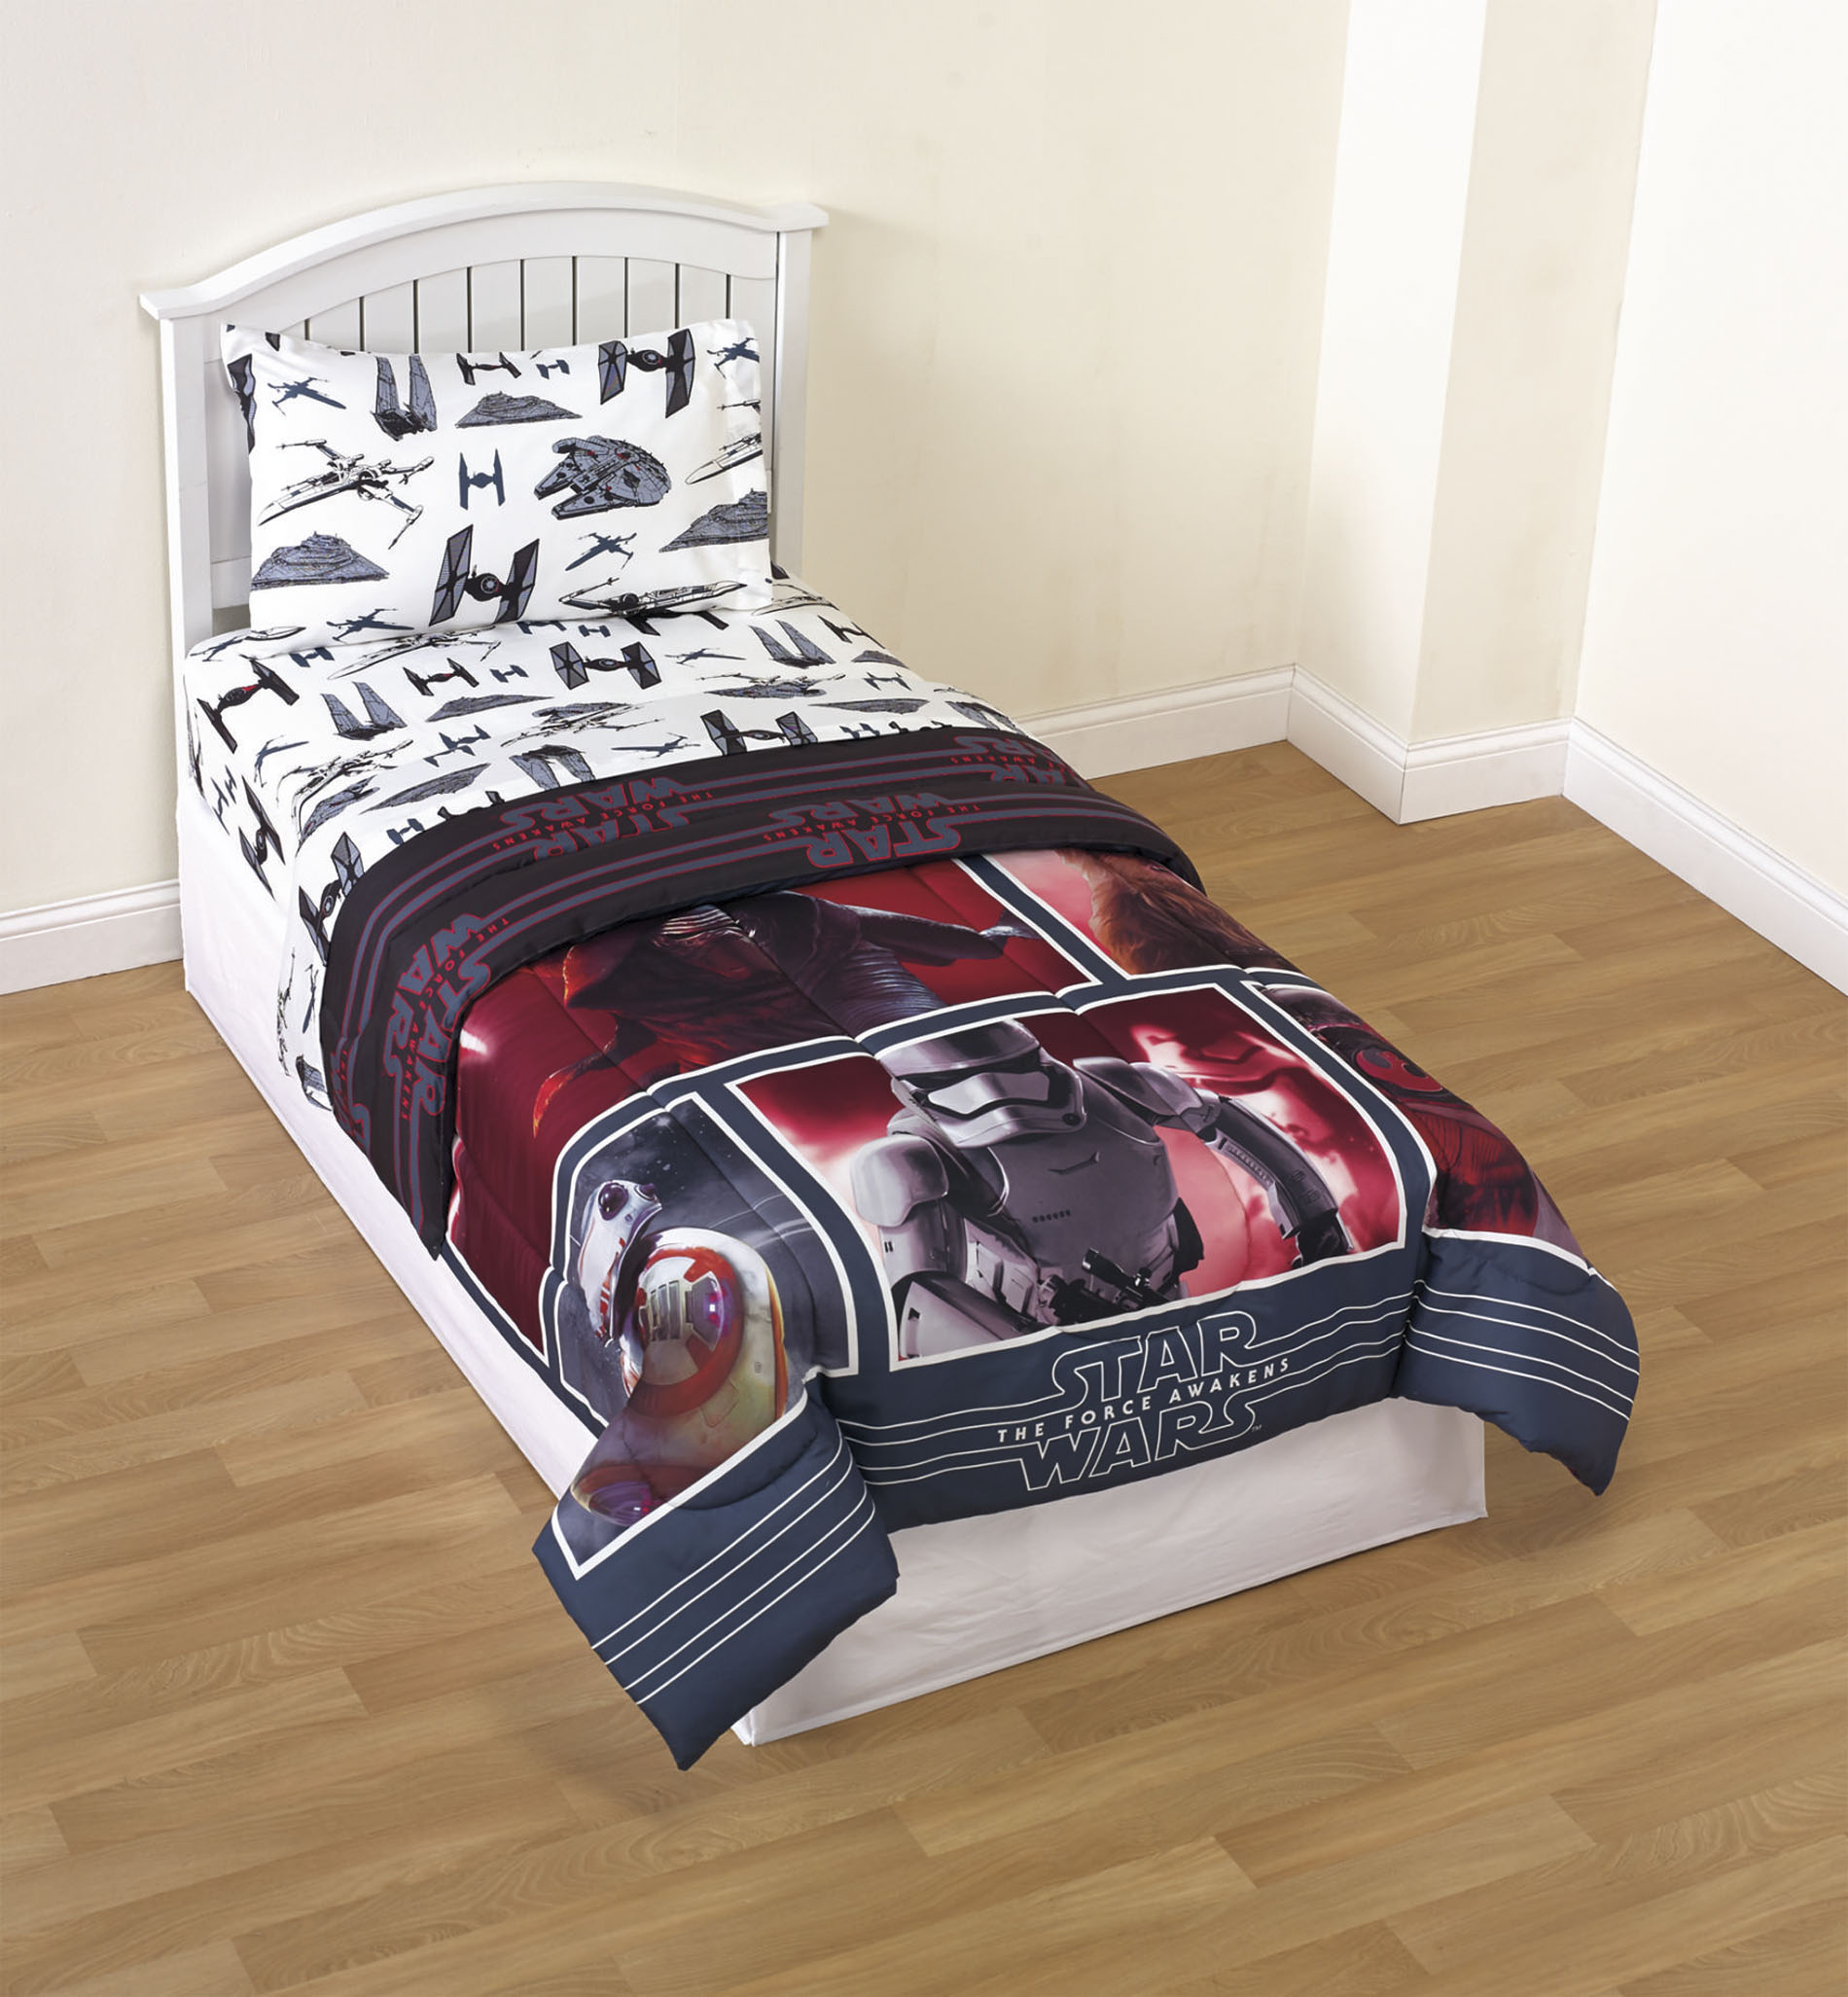 Star Wars Force Awakens Reversible Comforter - Home Bed & Bath Bedding Comforters